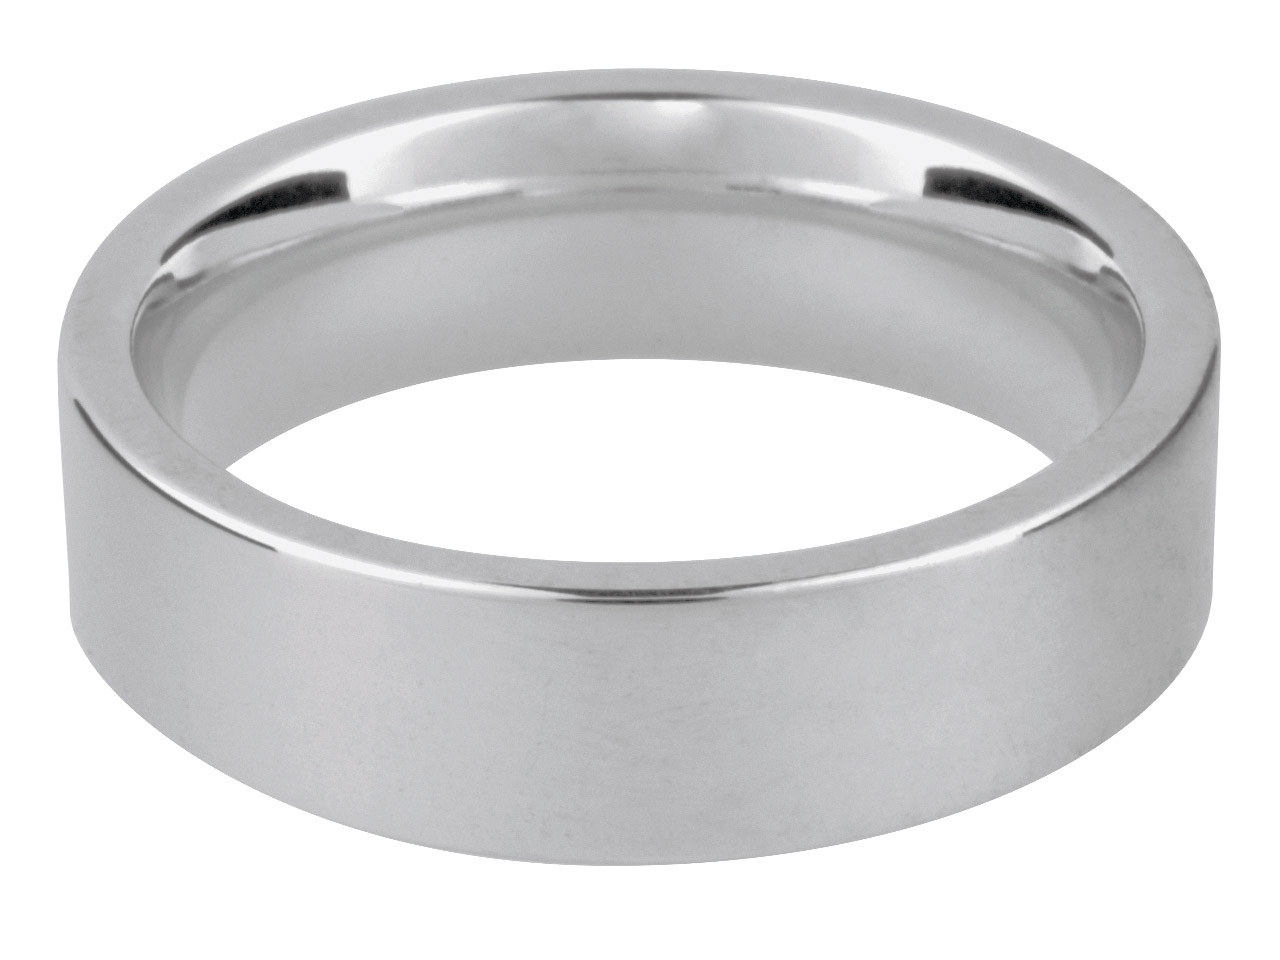 18ct White Easy Fit Wedding Ring   5.0mm O 7.5gms Medium Weight       Hallmarked Wall Thickness 1.69mm